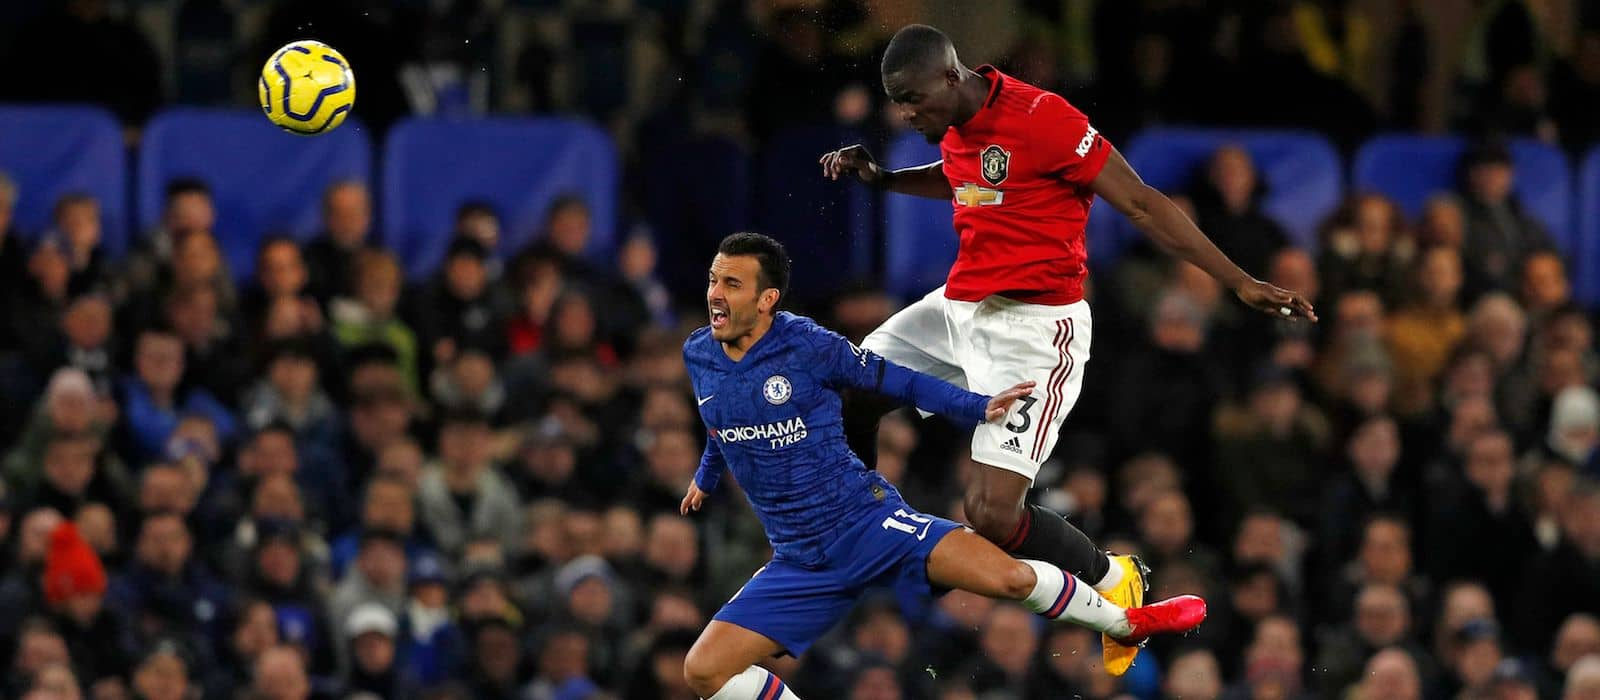 76% of fans think Eric Bailly should be Harry Maguire's centre back partner